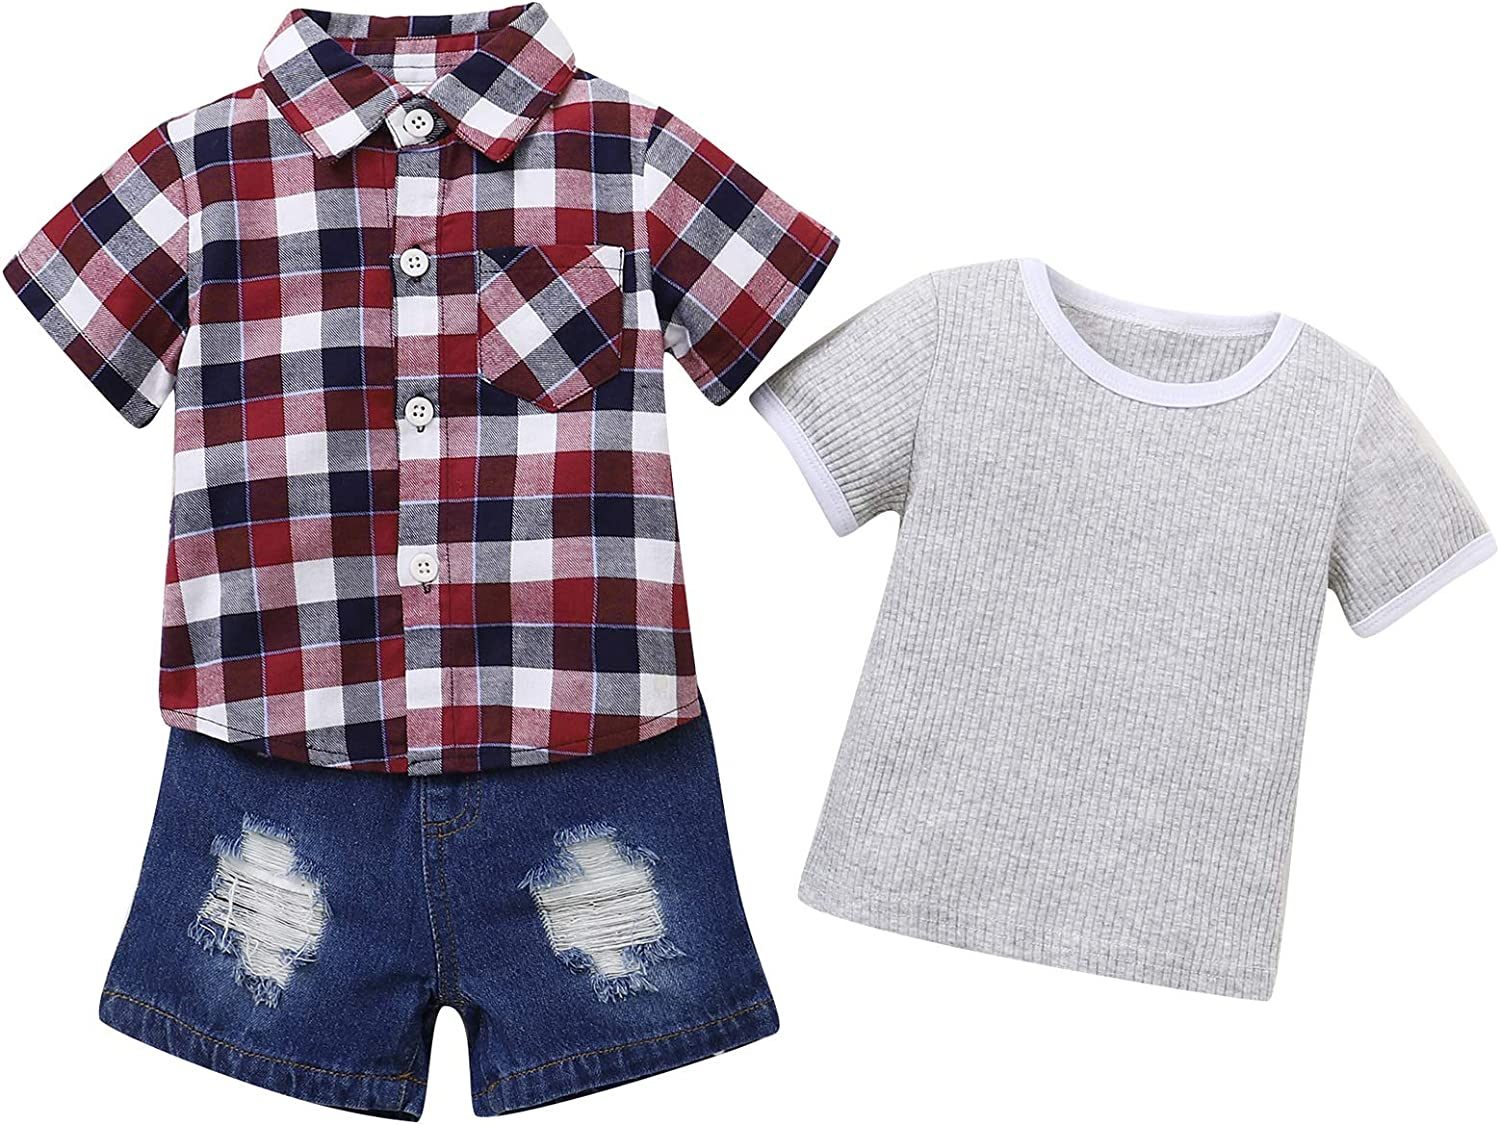 Toddler Baby Boy Clothes Summer Outfits Shorts Set Botton Down Shirt Tops Jeans Boy Clothes Outfits Set